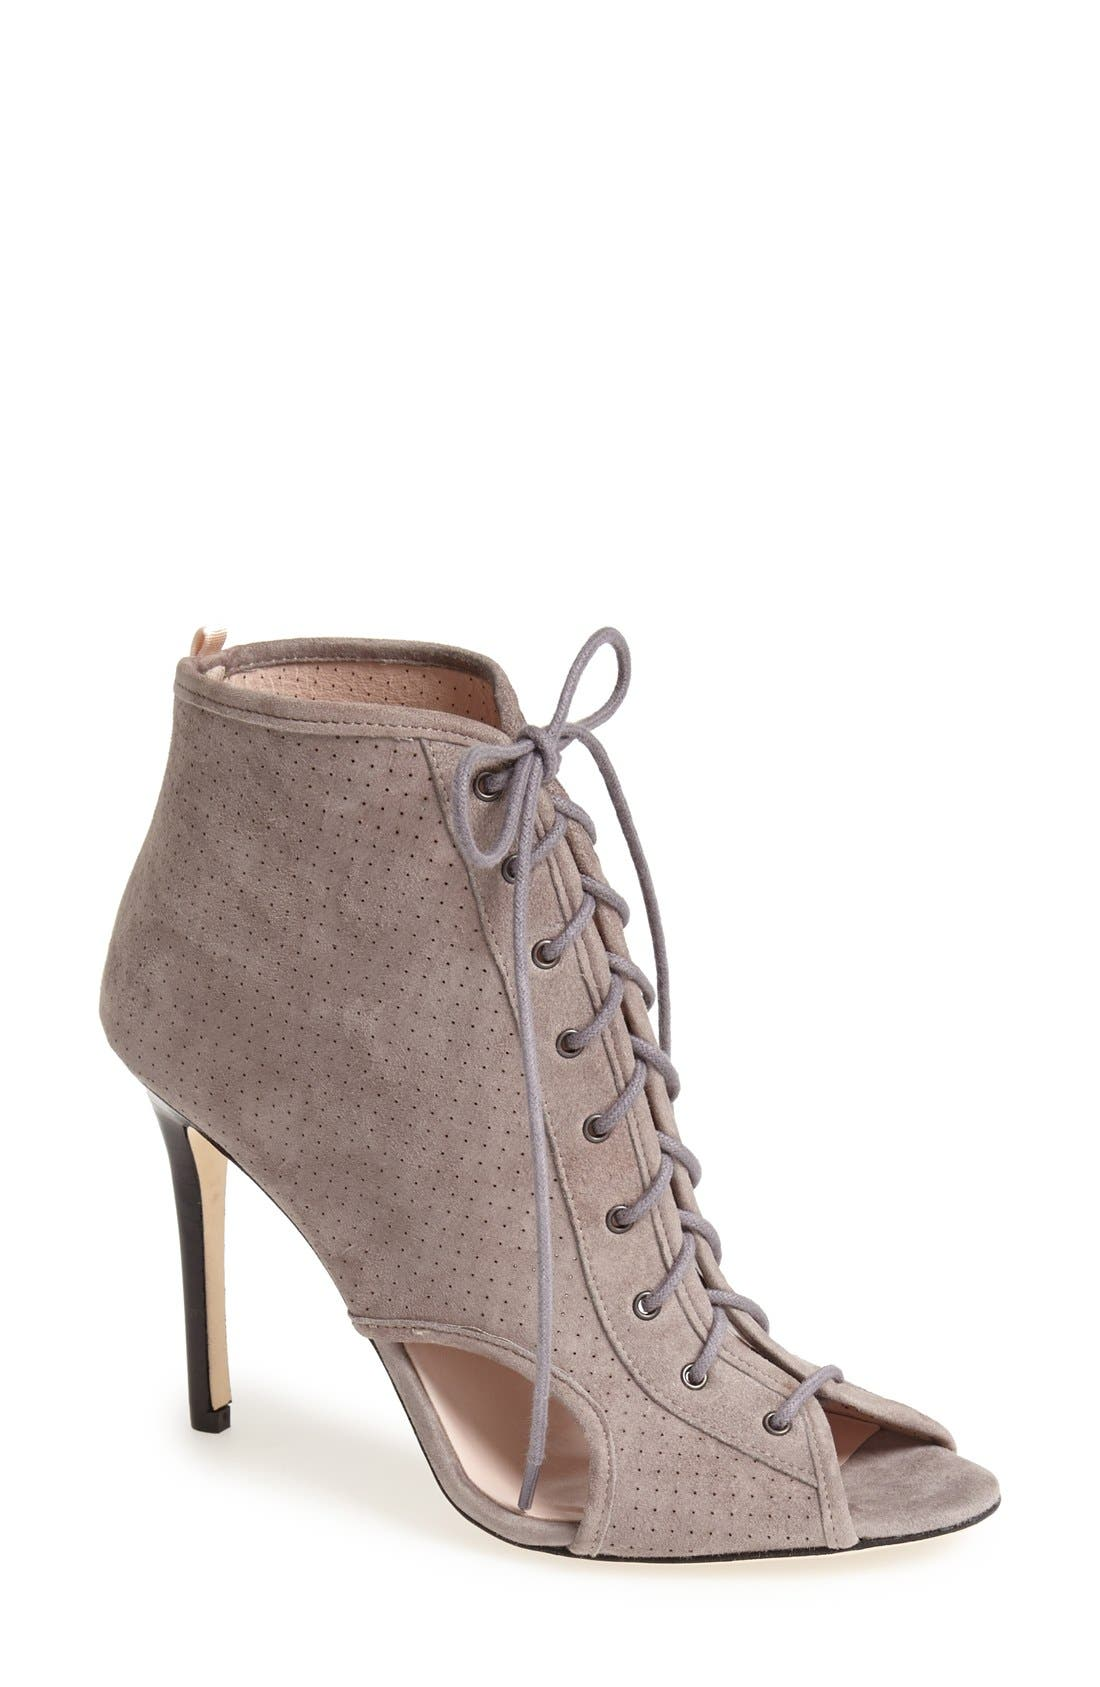 Main Image - SJP 'Marci' Lace-Up Suede Bootie (Women)